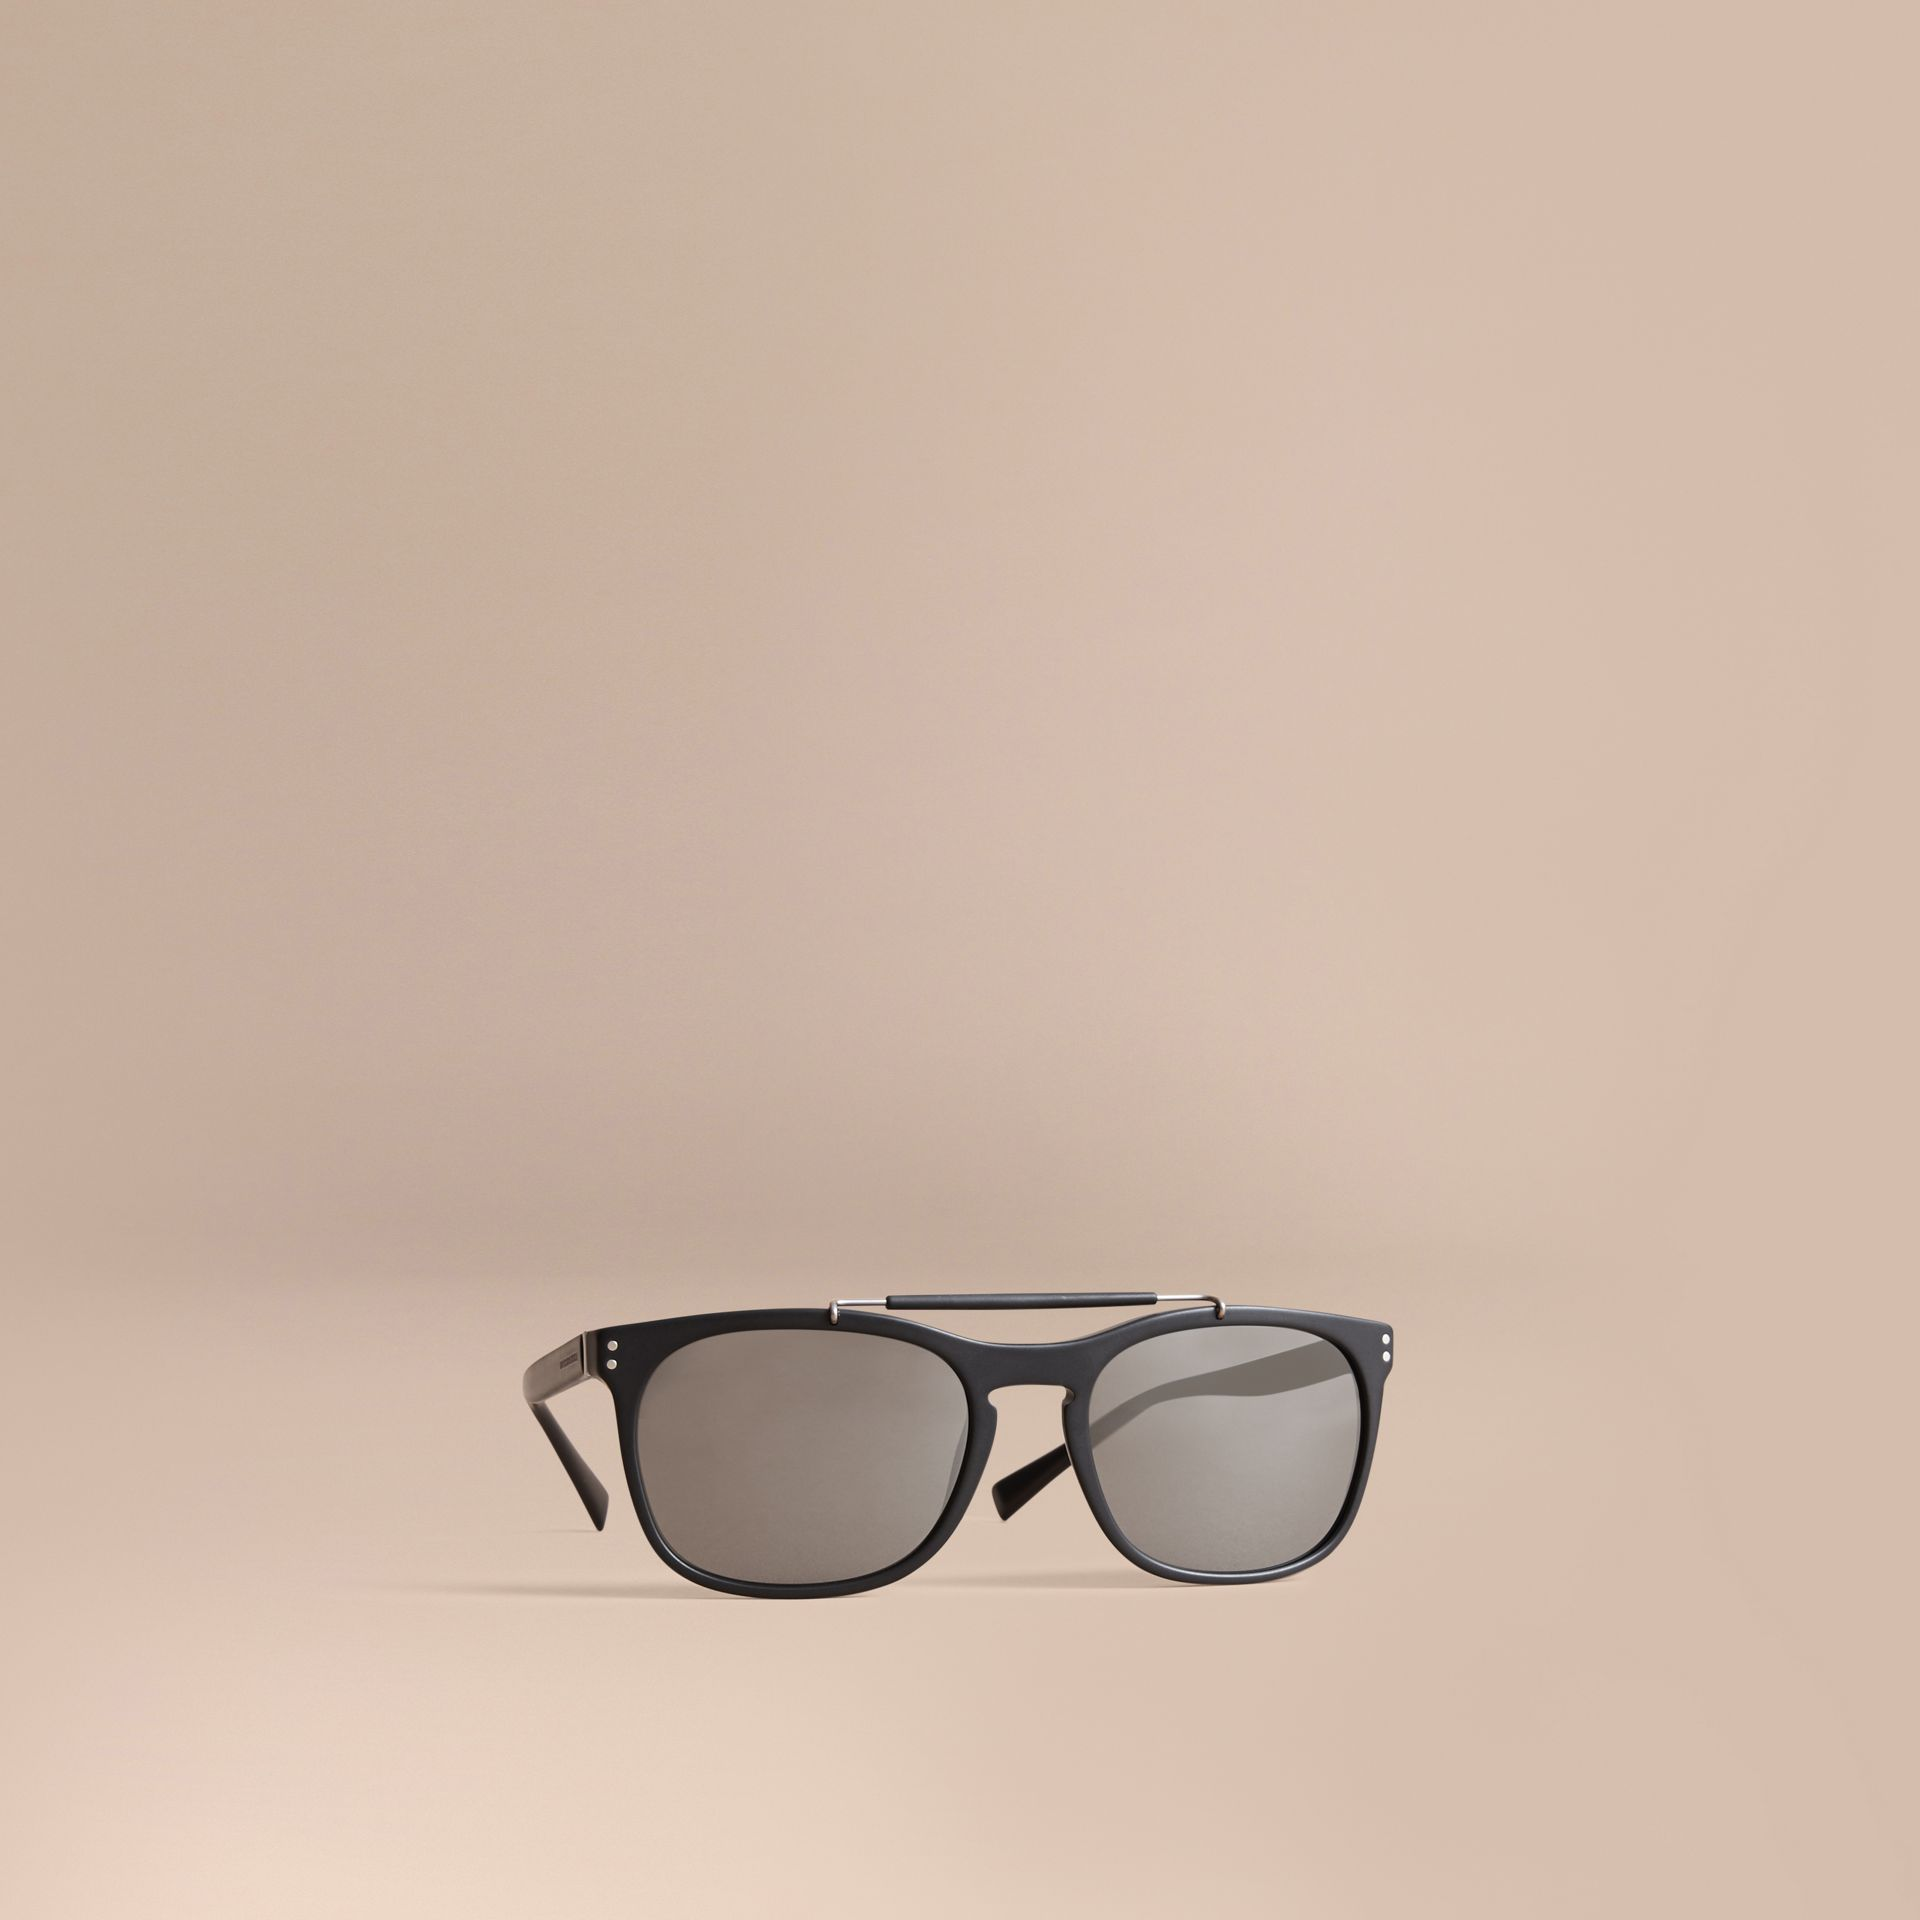 Top Bar Square Frame Sunglasses in Black - Men | Burberry Singapore - gallery image 1